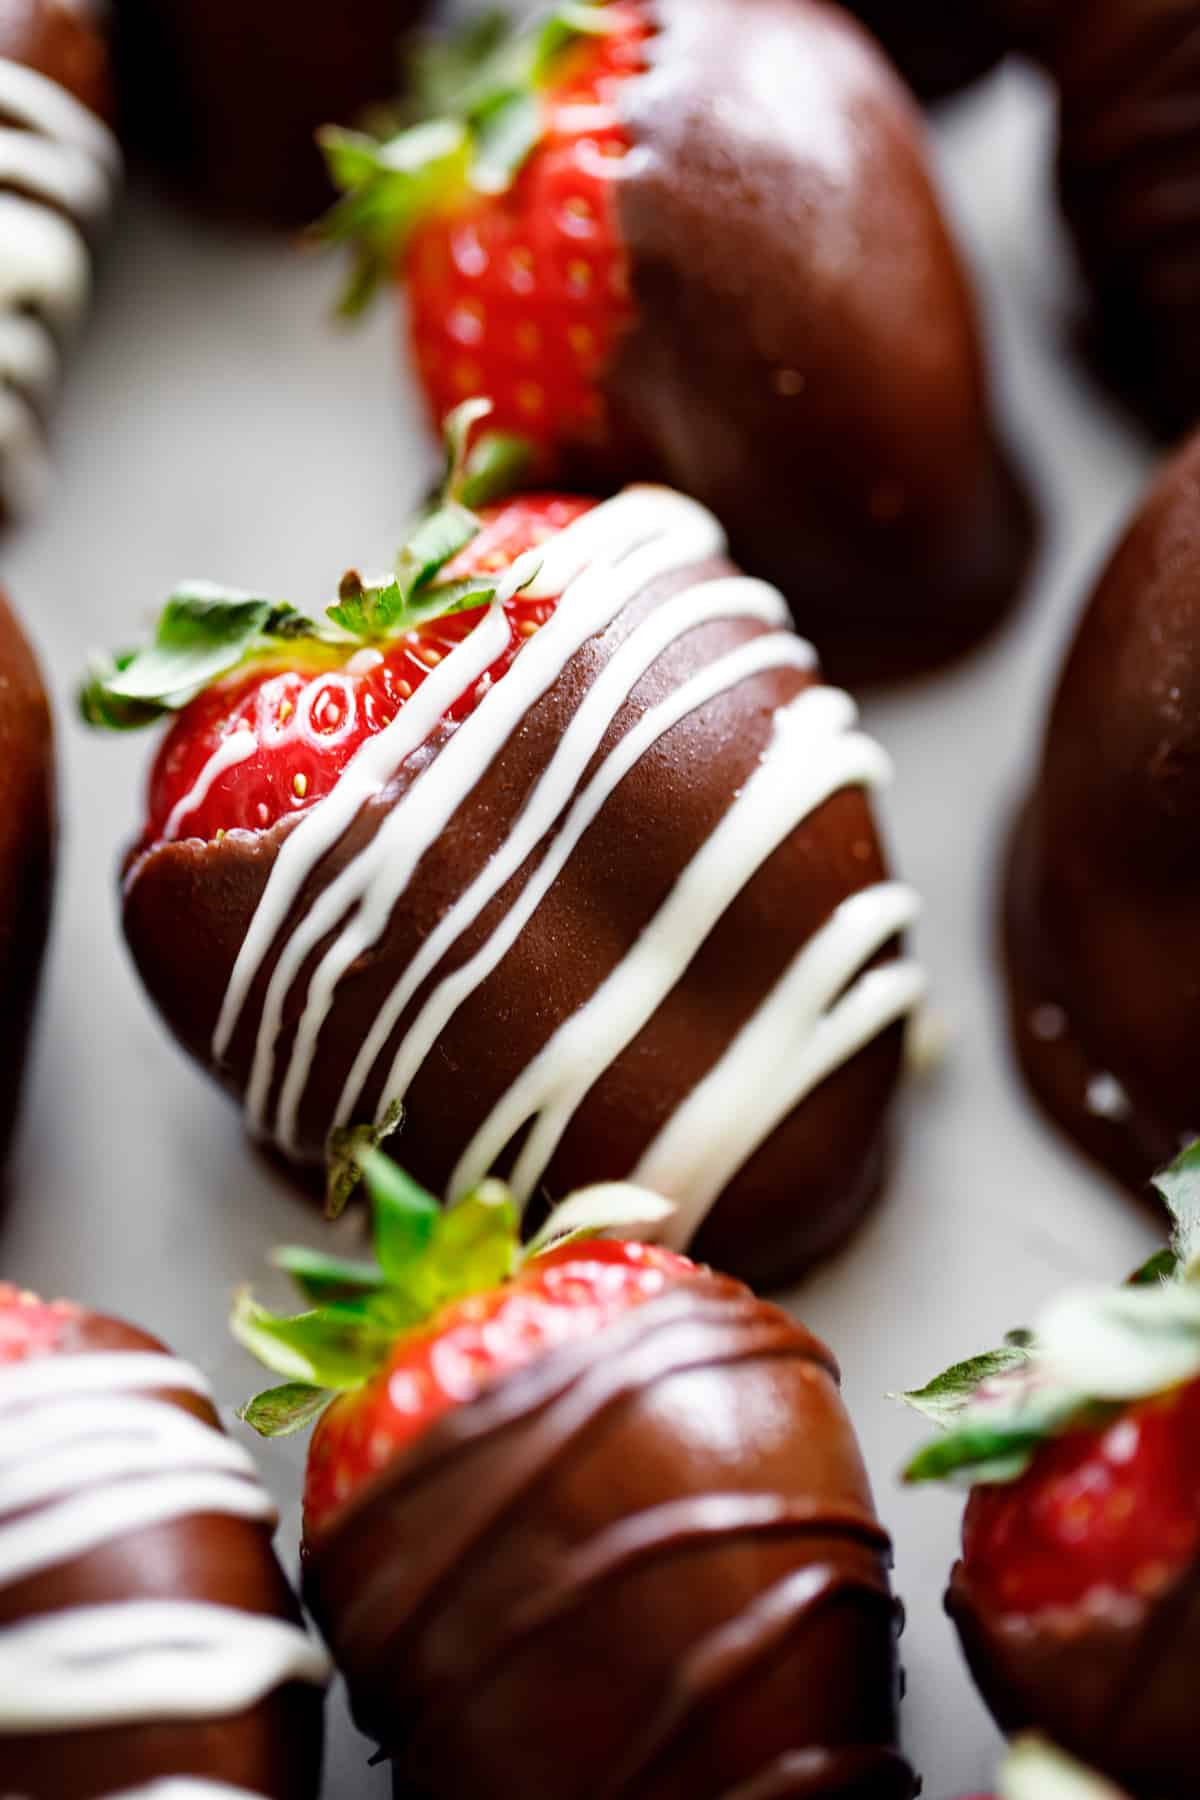 A close up photograph of a chocolate covered strawberry.